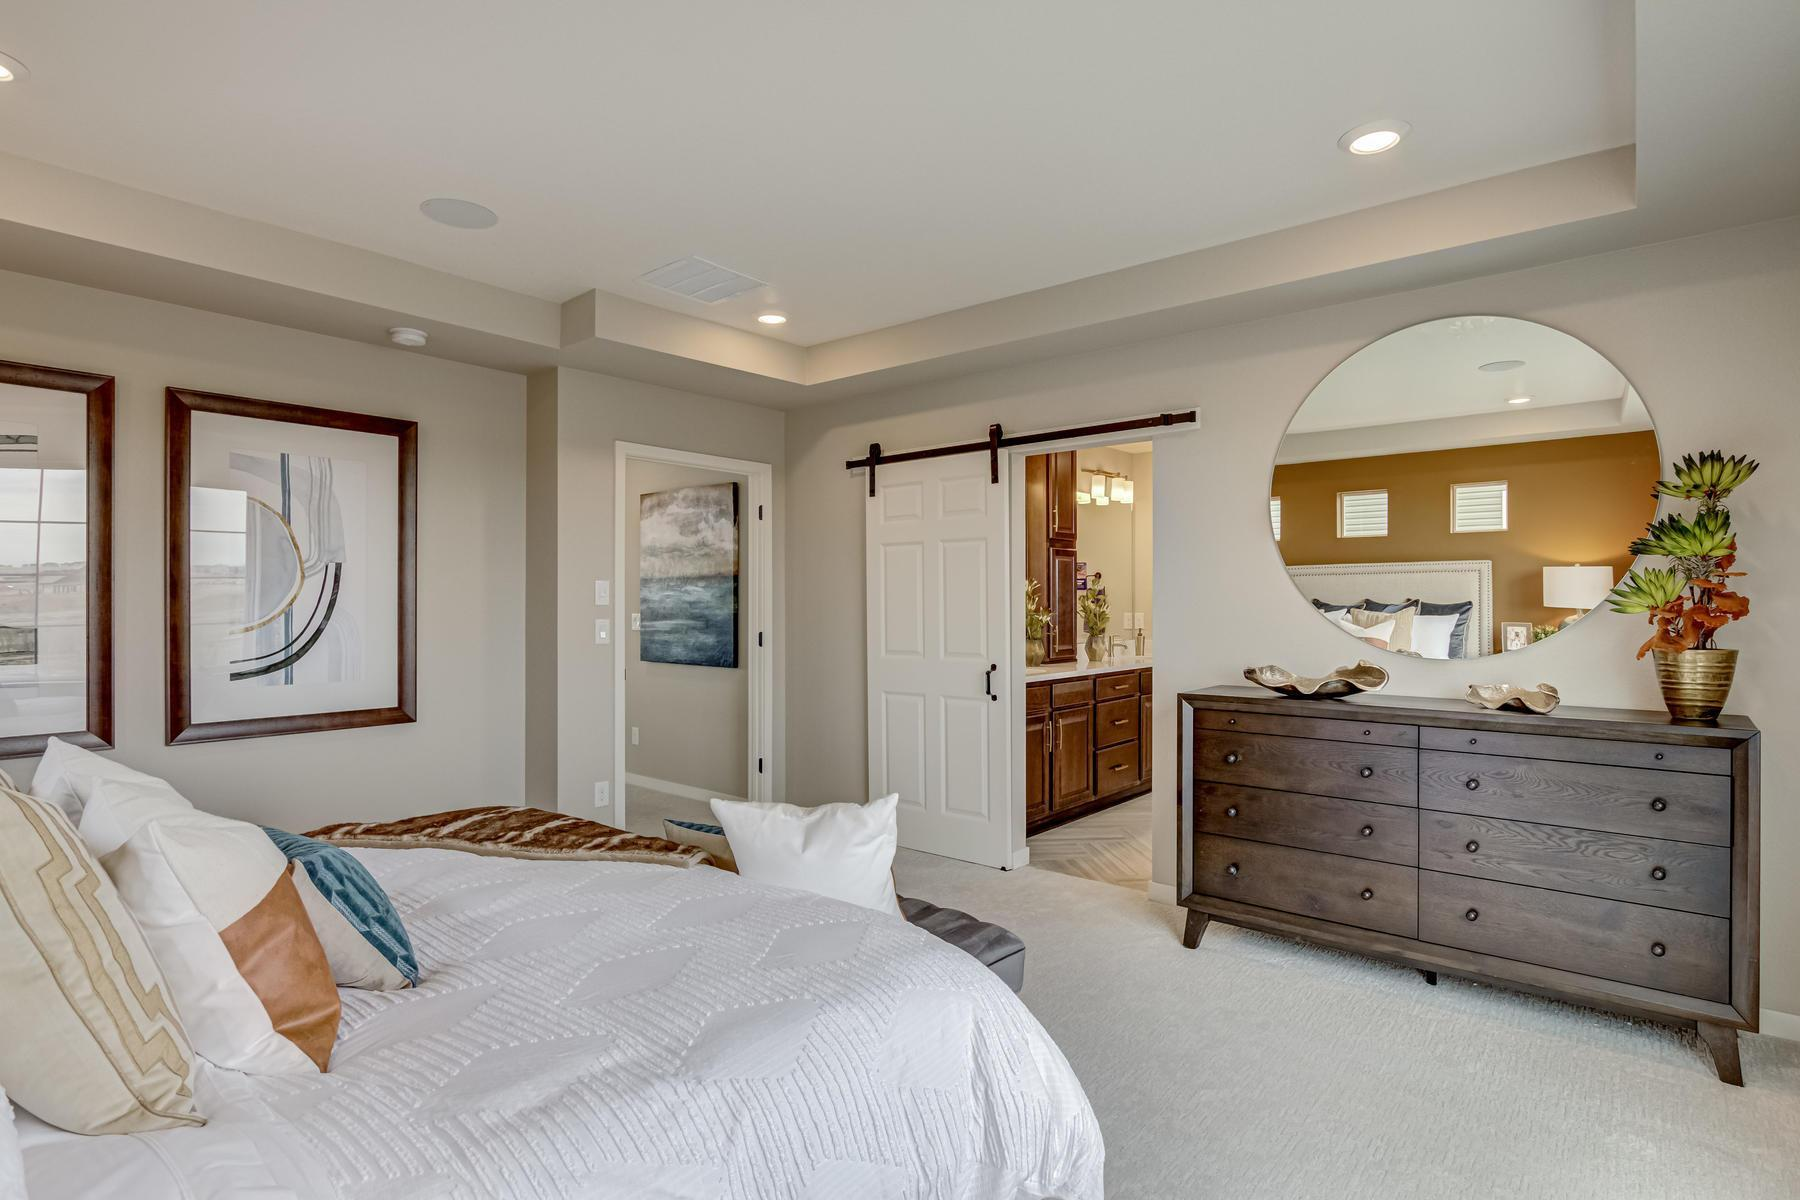 Bedroom featured in the BENNET By Oakwood Homes in Denver, CO